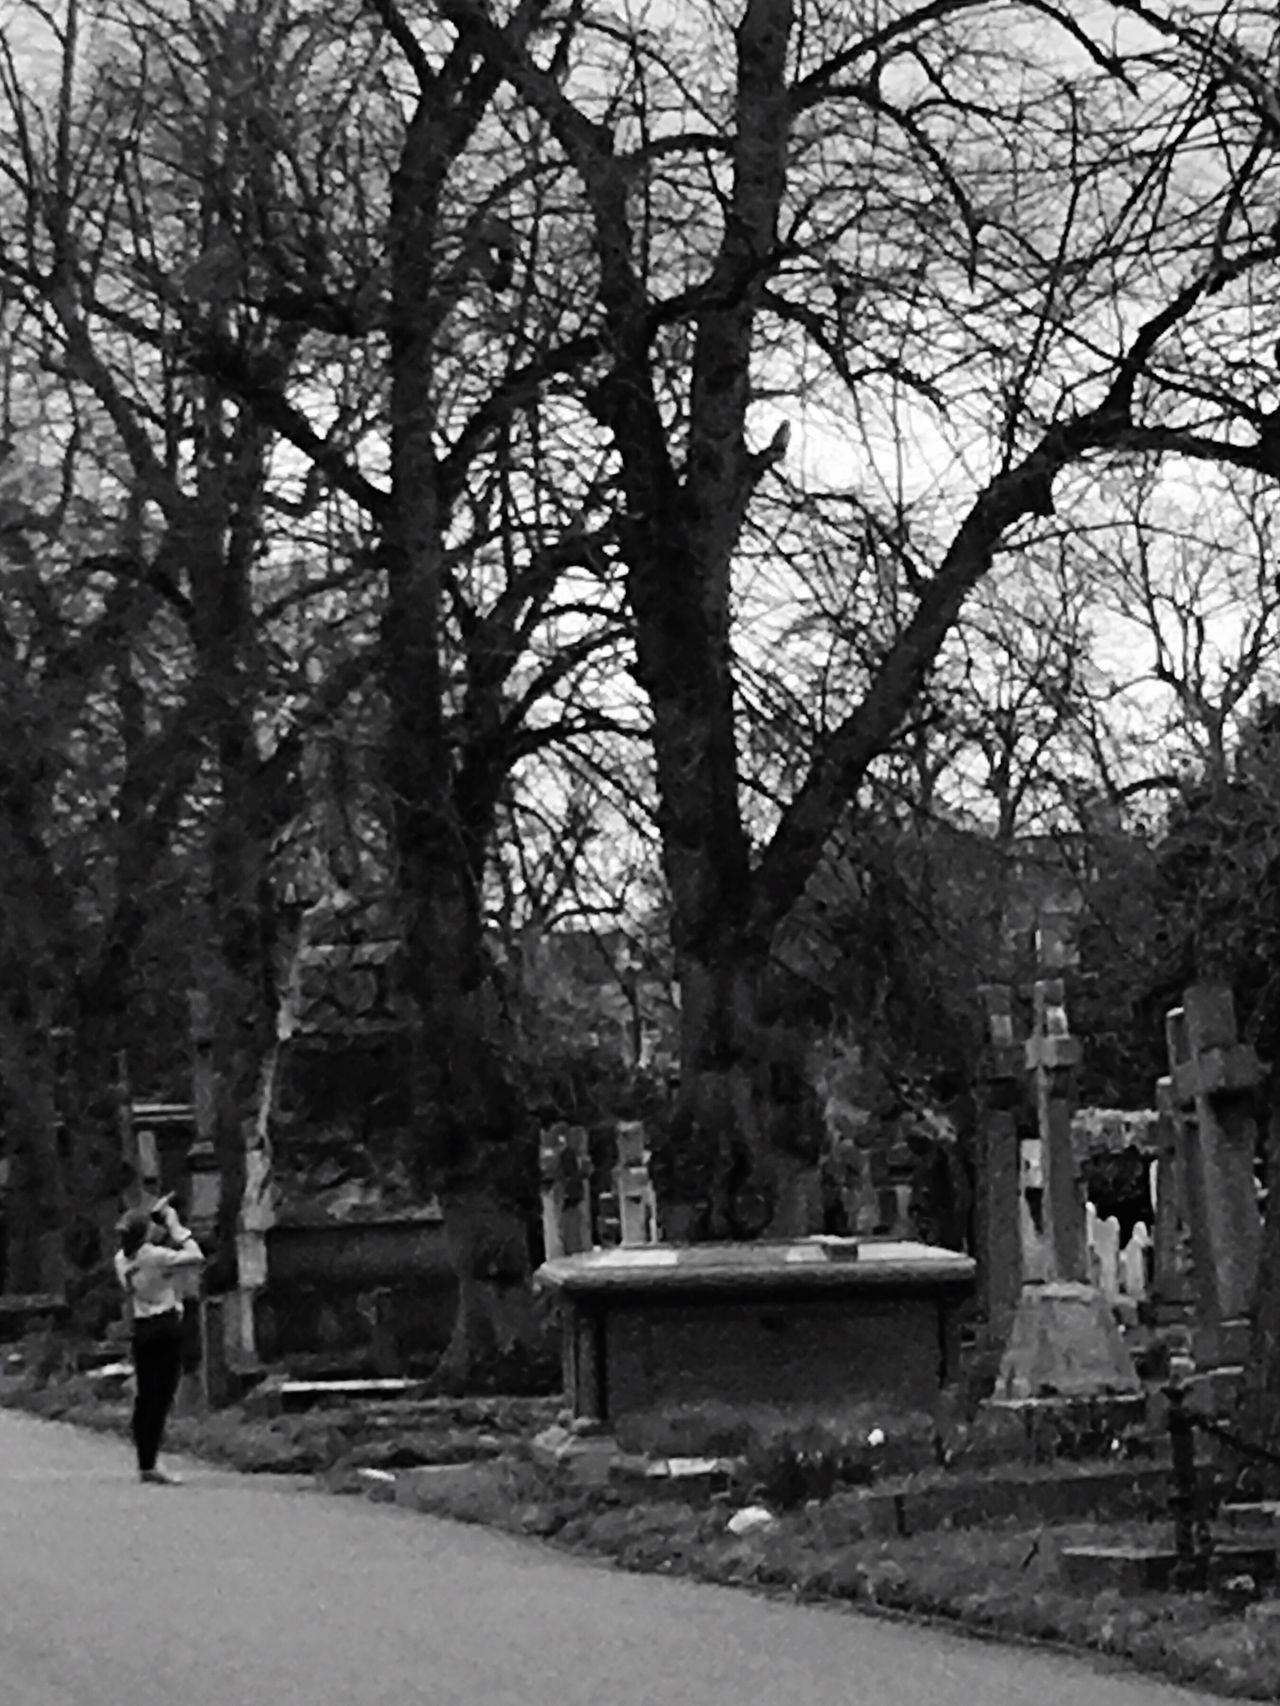 Taking Photos Enjoying Life Iphonephotography London Cemetery Photographer In The Shot